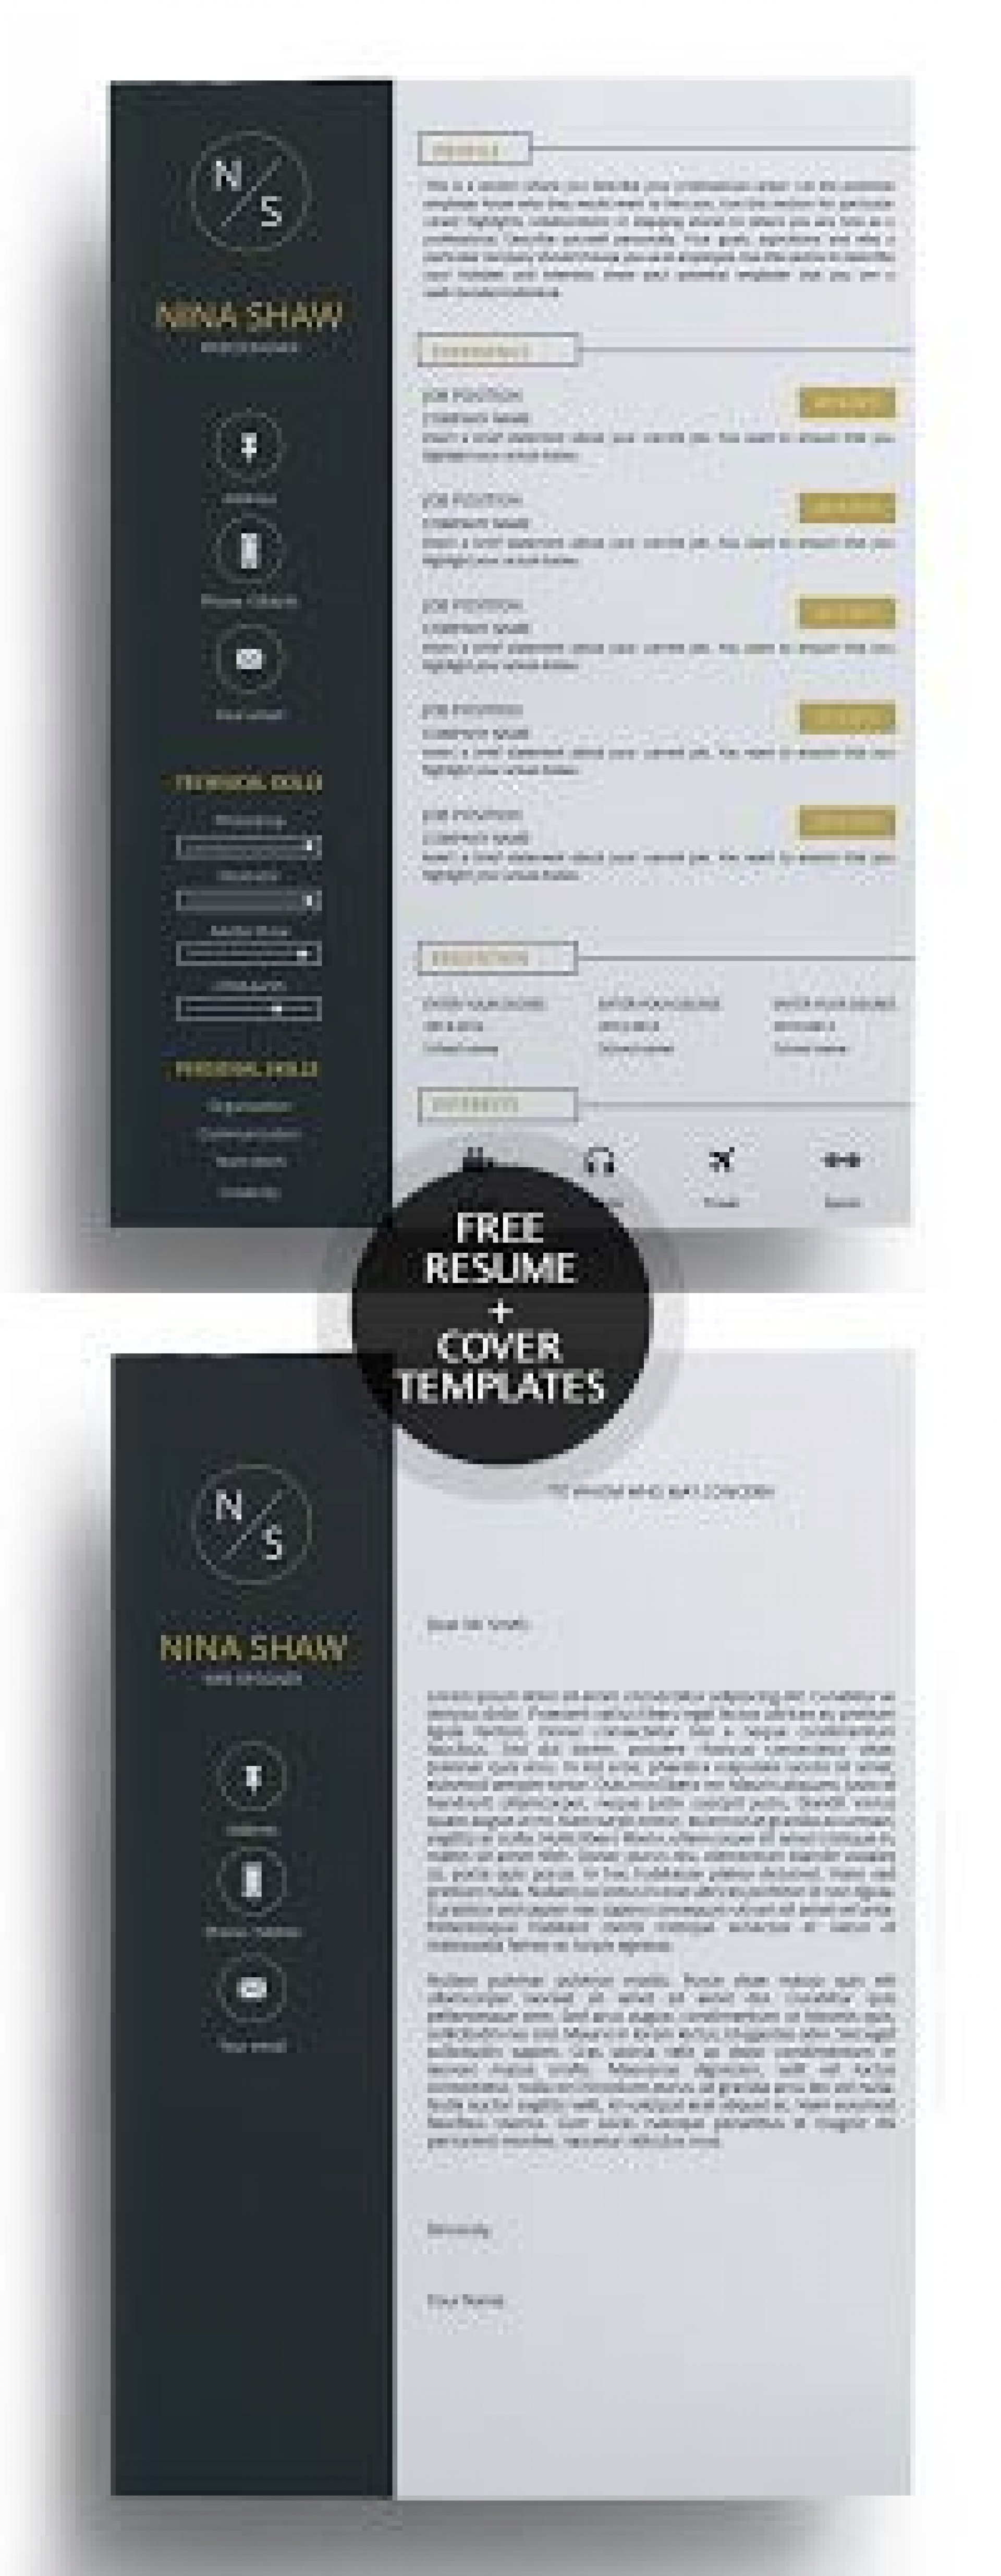 009 Fearsome Free Download Cv Cover Letter Template Example  Templates1920